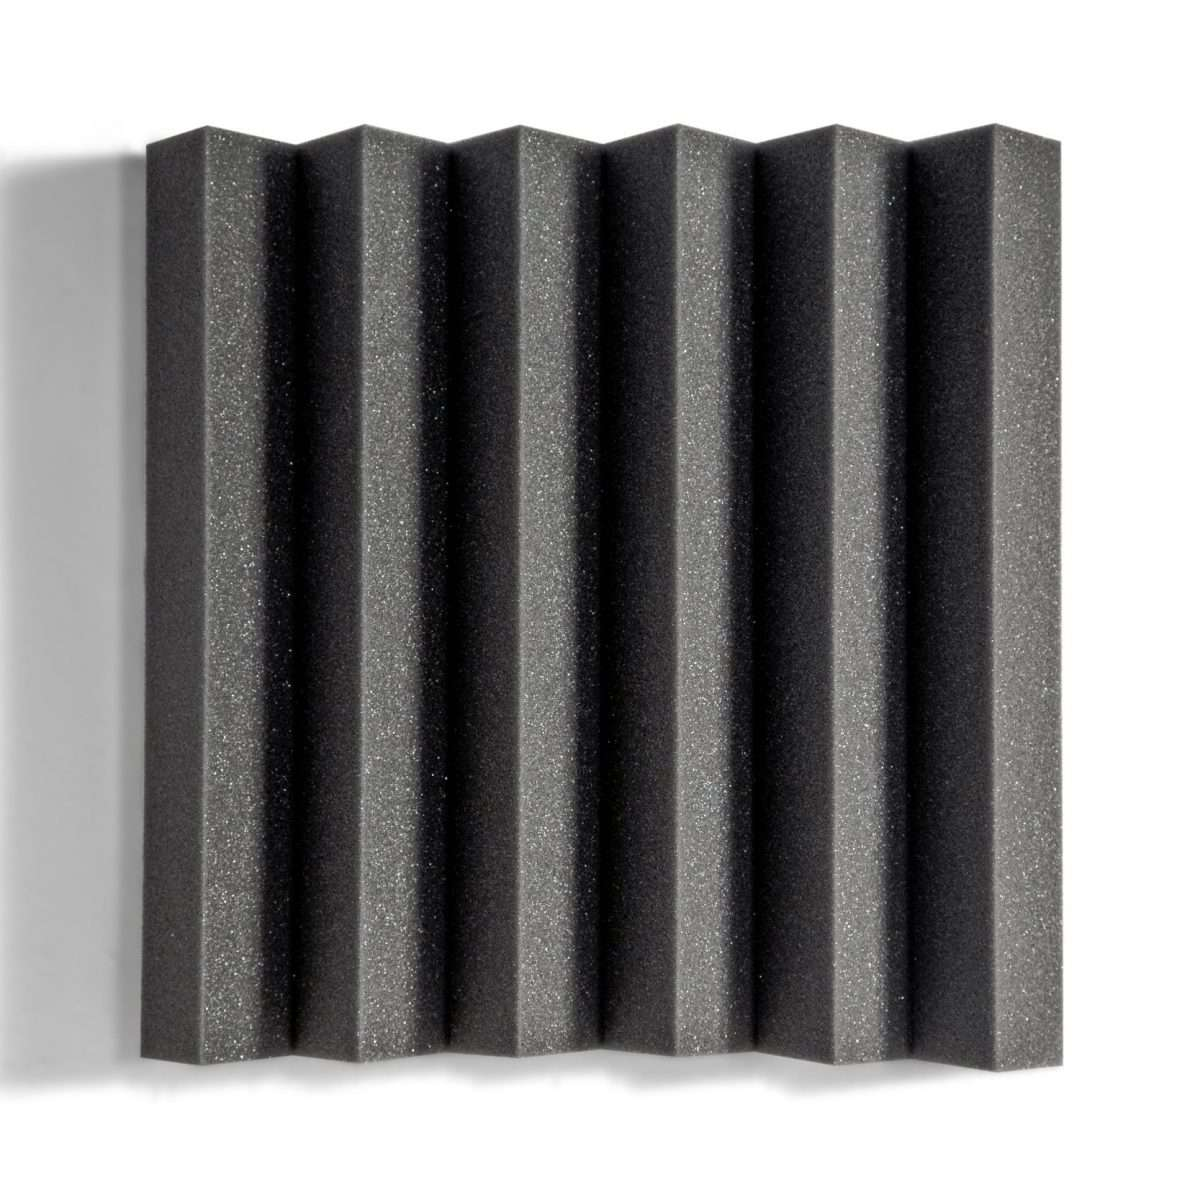 Our Ridge Tiles can be used for a range of applications including Acoustic professional studios, rehearsal rooms, concert halls, podcasting, churches, home theatres, vocal booths, home studios, offices, man caves, dog kennels, utility closets, and more...